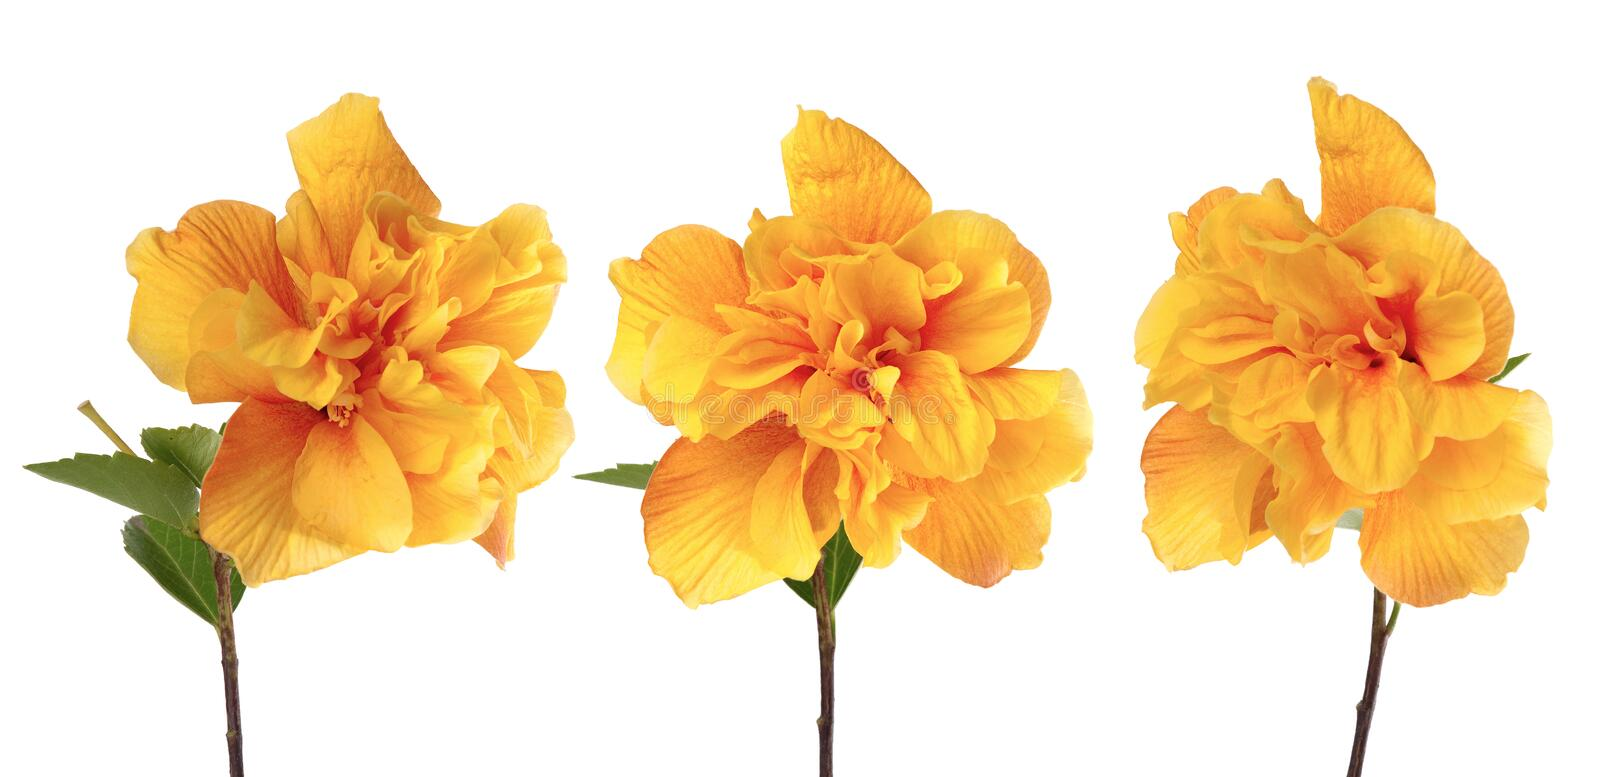 Download Yellow hibiscus flowers stock image. Image of hibiscus - 16308807